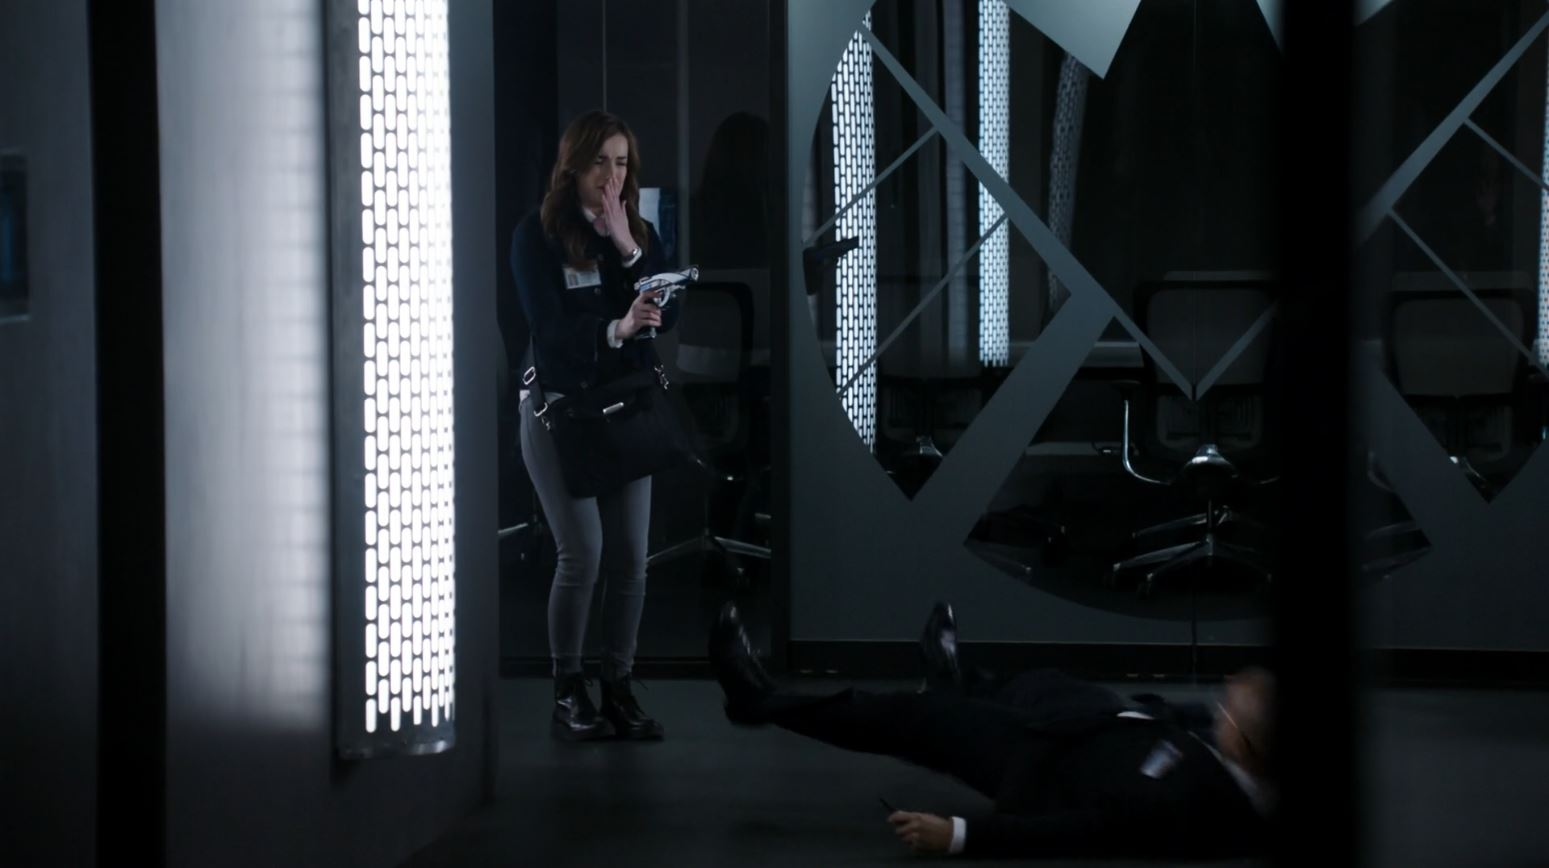 Elizabeth Henstridge as Jemma Simmons shoots a SHIELD agent - The Hub